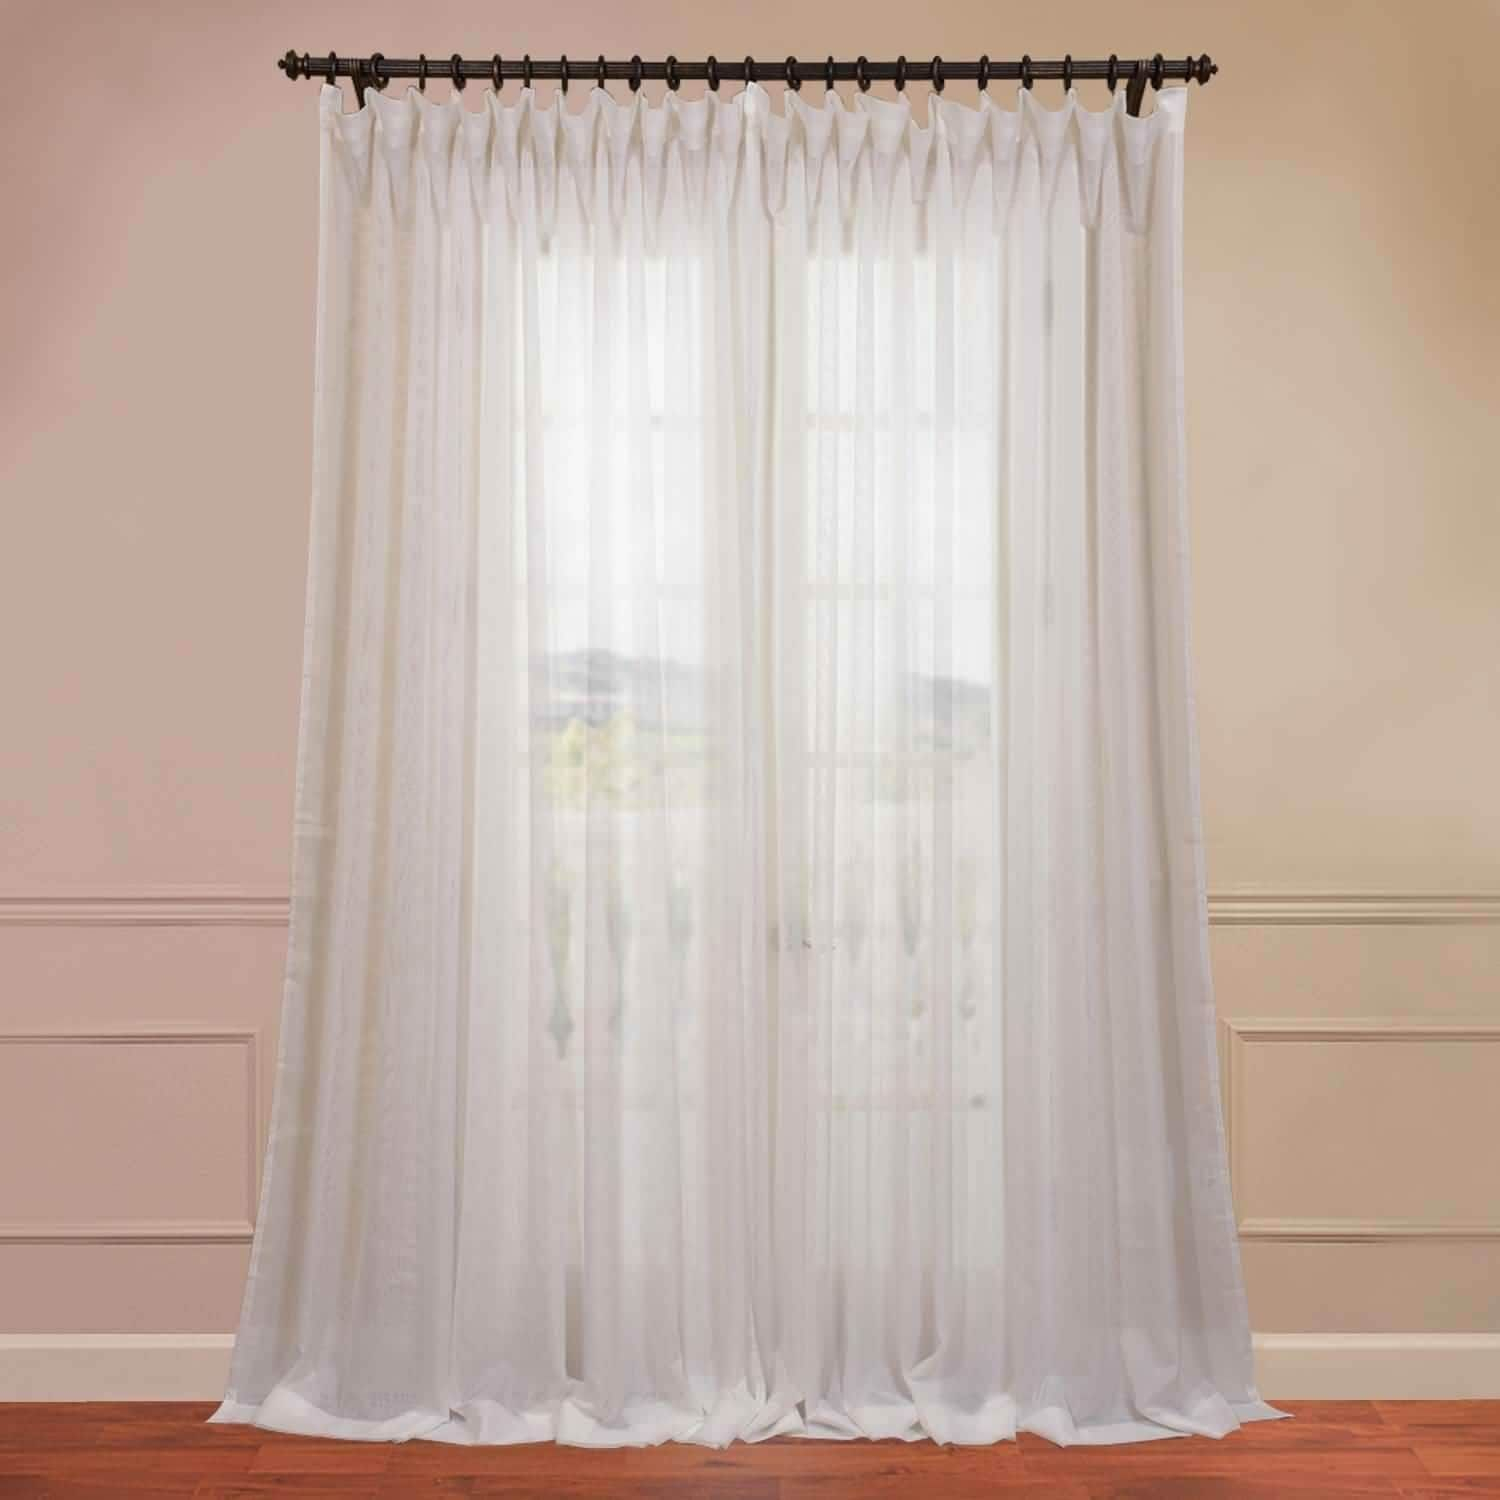 Exclusive Fabrics Signature Off White Extra Wide Double Pertaining To Signature White Double Layer Sheer Curtain Panels (View 5 of 30)